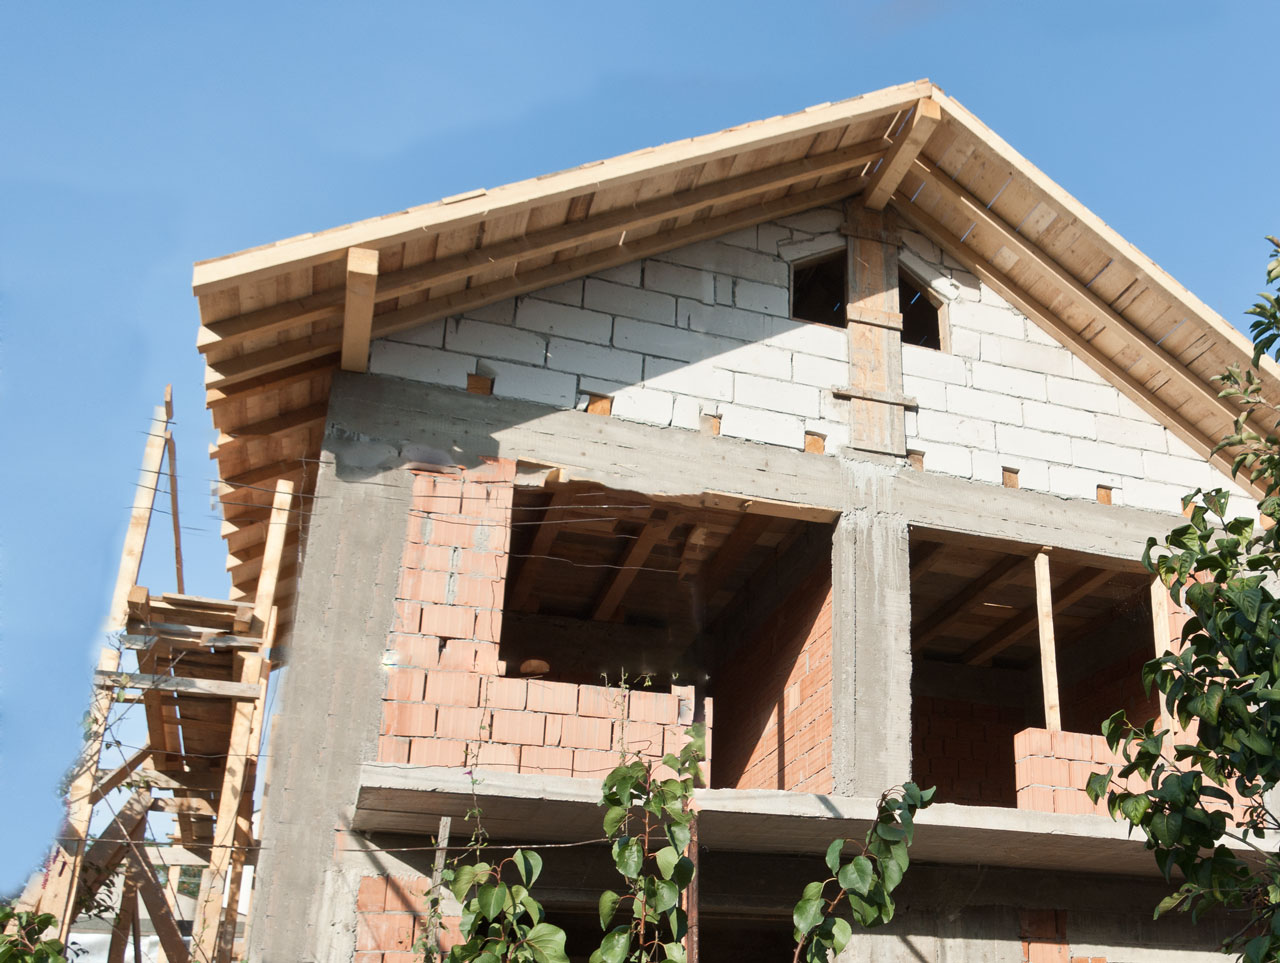 How to build a brick house  HowToSpecialist  How to Build Step by Step DIY Plans